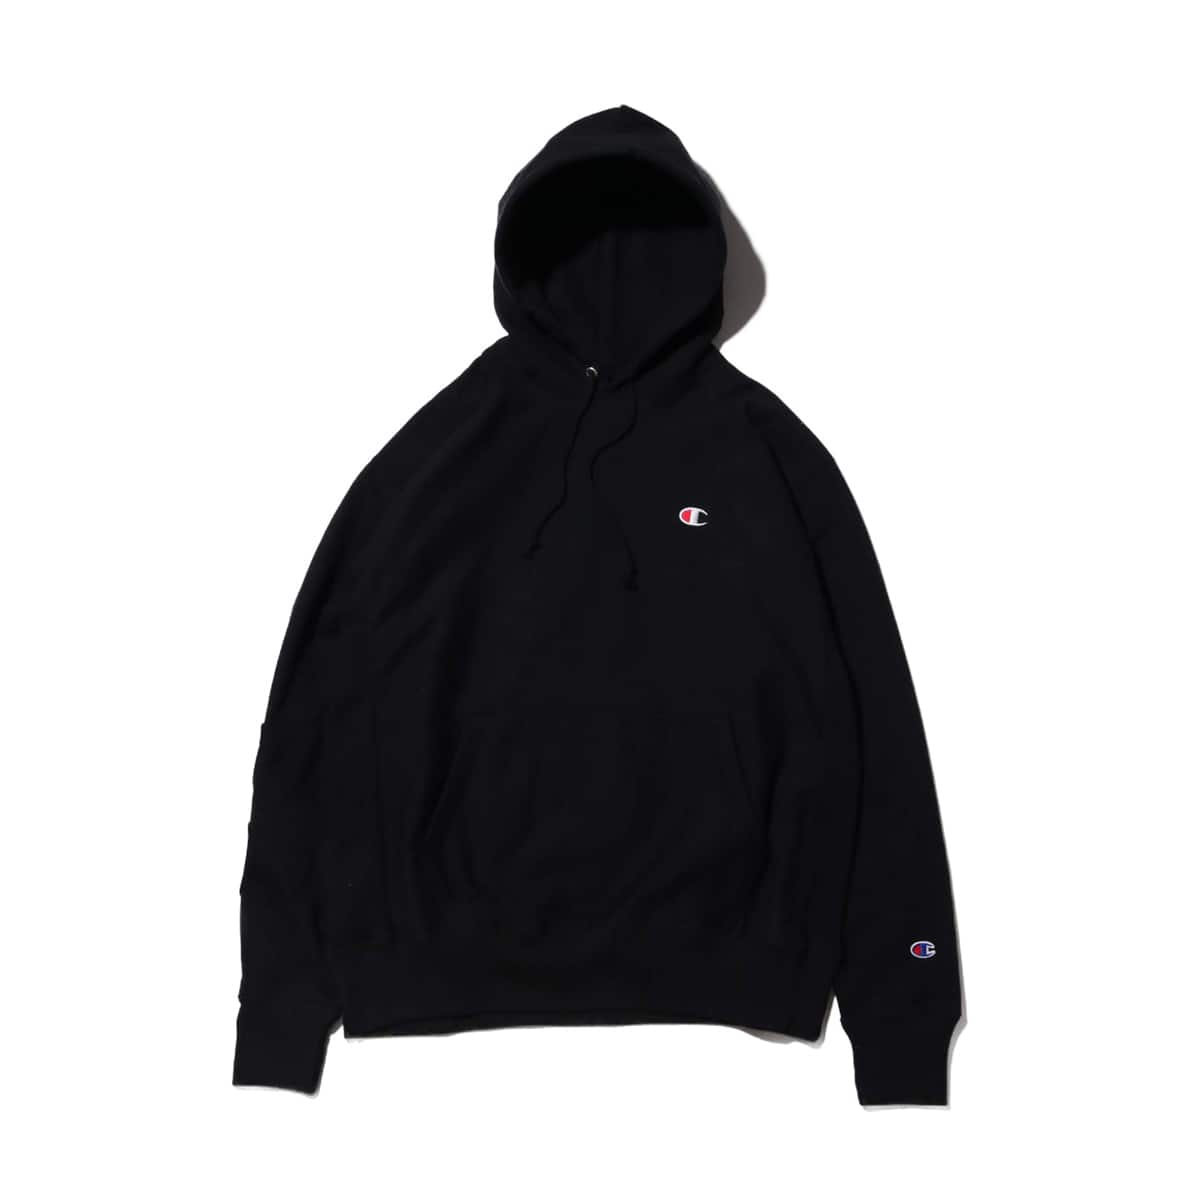 REMAKE HOODIE by 太田夢莉 BLACK 19HO-S_photo_large